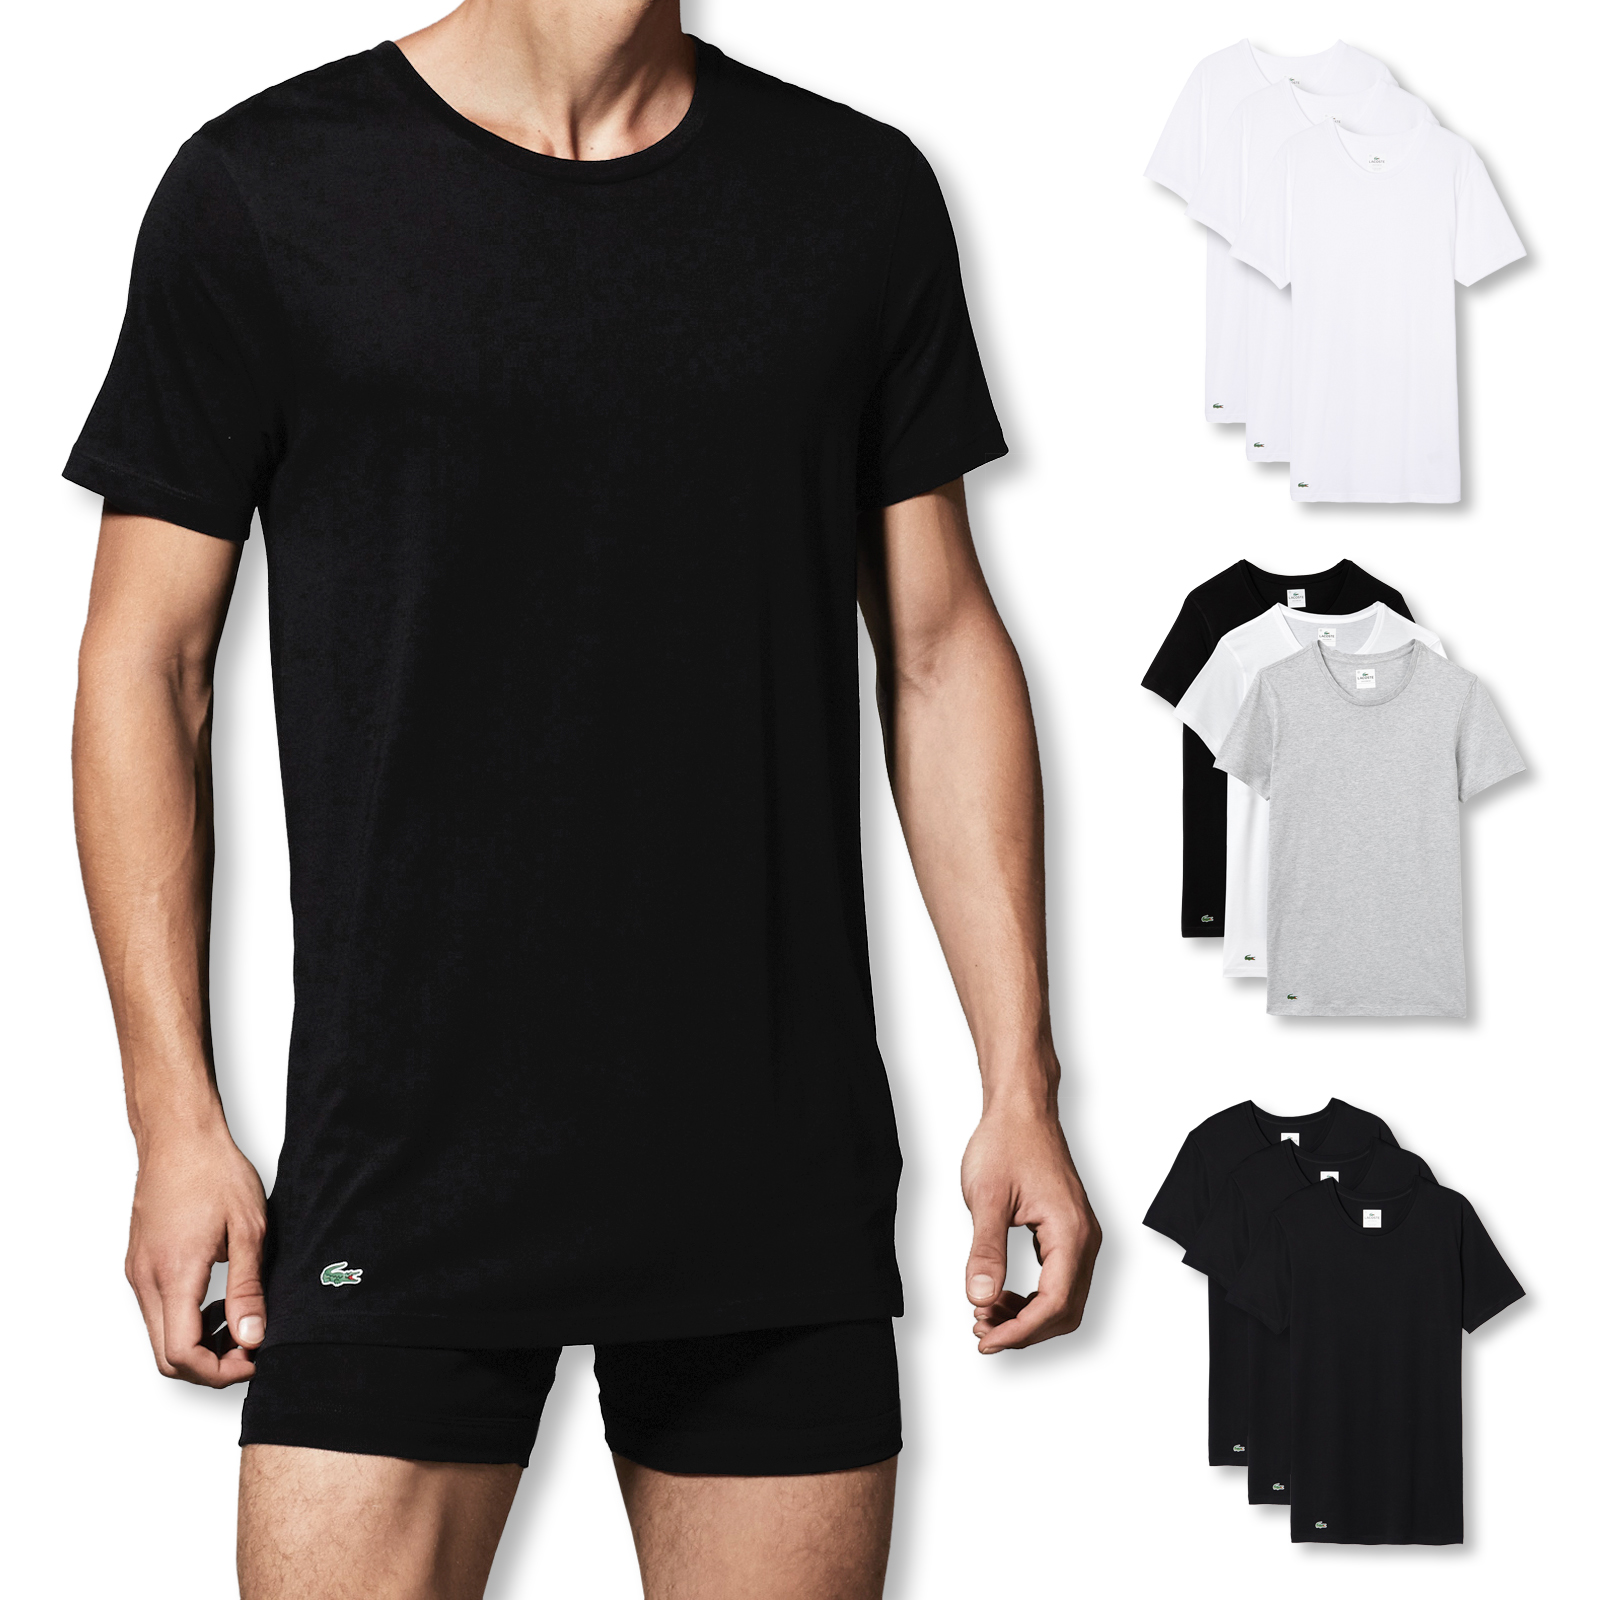 Lacoste 3er Pack T-Shirts C-Neck Essentials150998 M L XL in core multi vergrößern